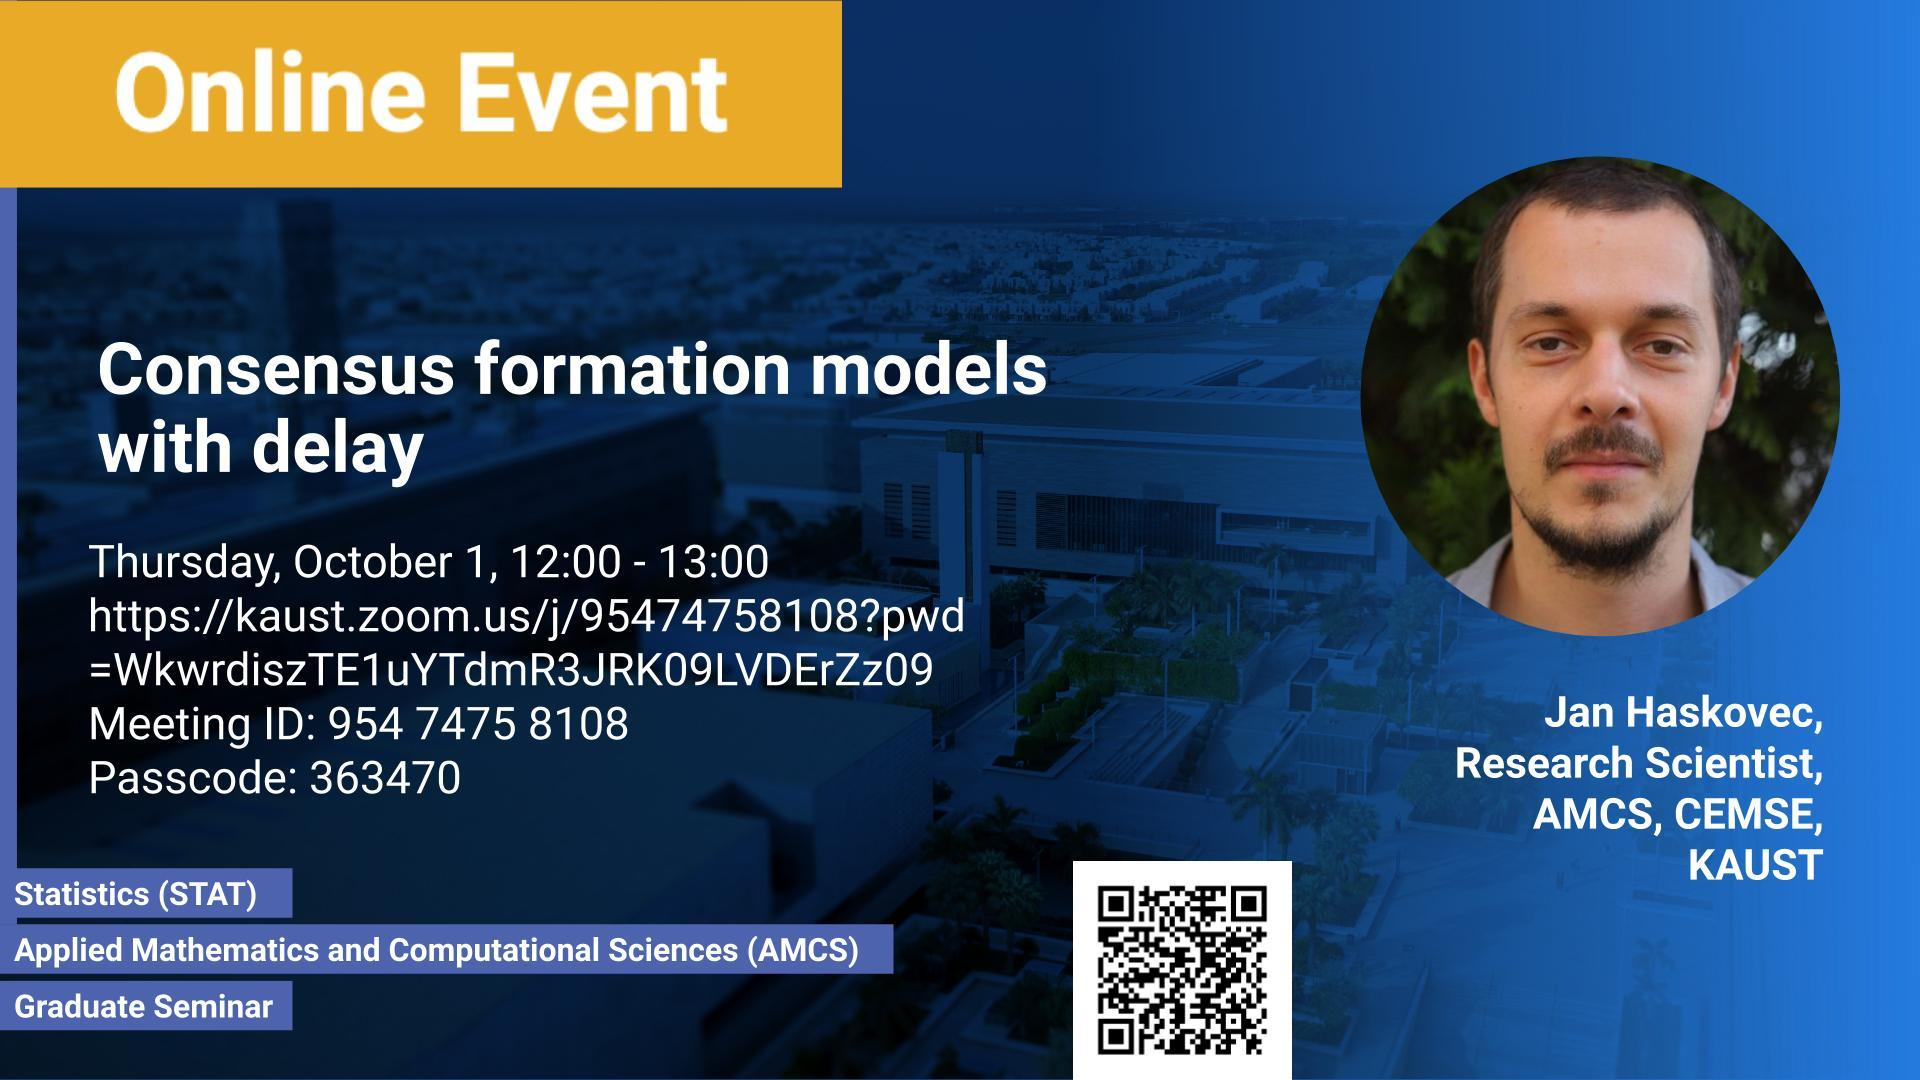 KAUST-CEMSE-AMCS-STAT-Graduate-Seminar-Jan-Haskovec-Consensus formation-models-with-delay.jpg